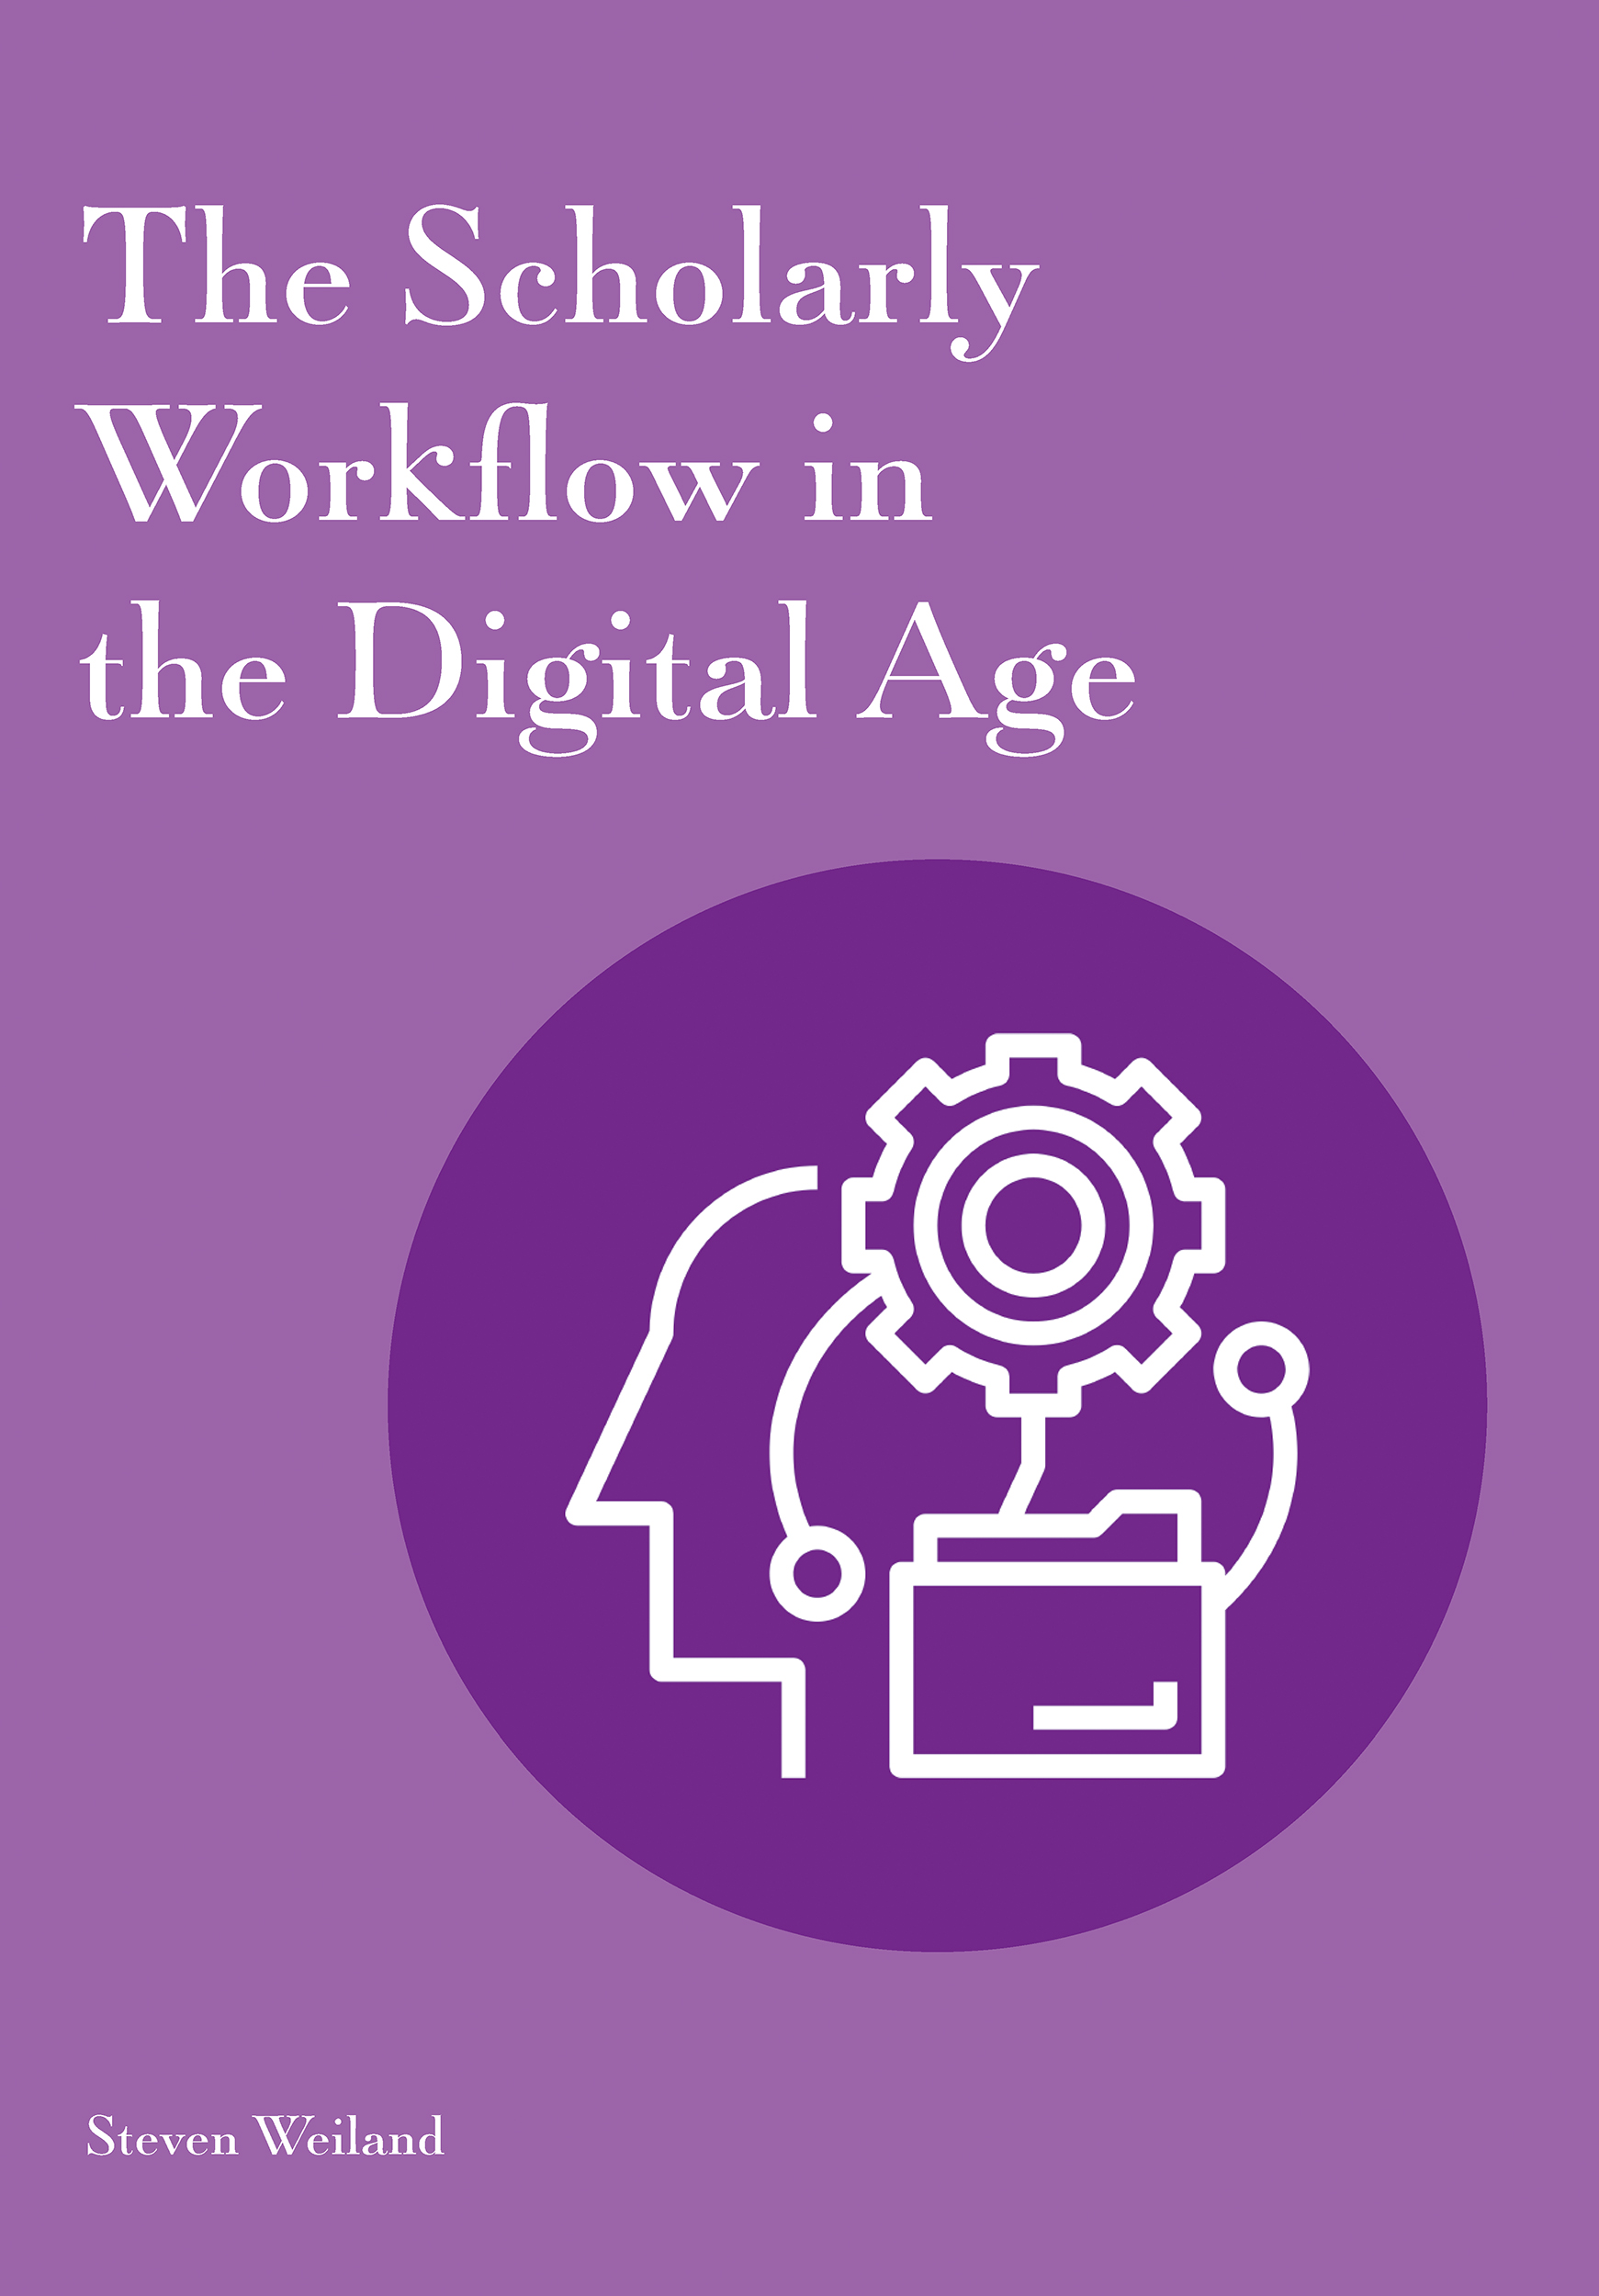 The Scholarly Workflow in the Digital Age